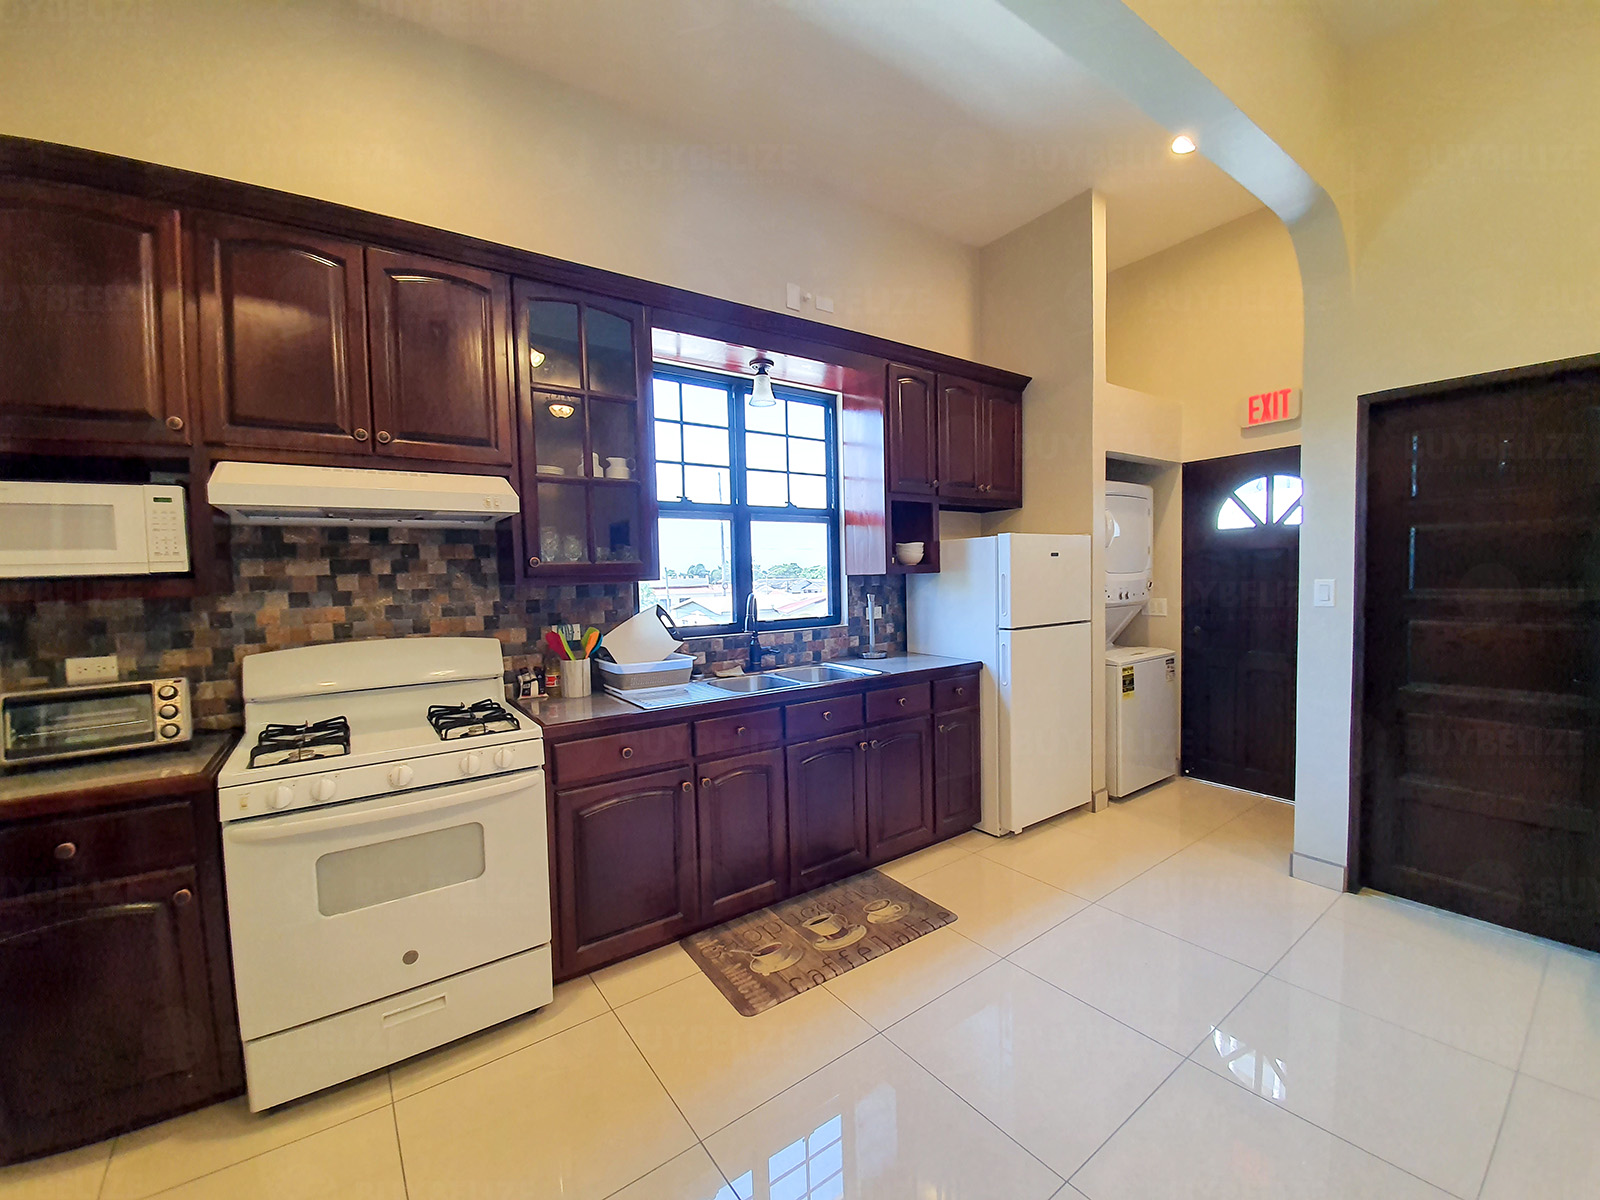 Single Room Apartments for Rent in Belize City